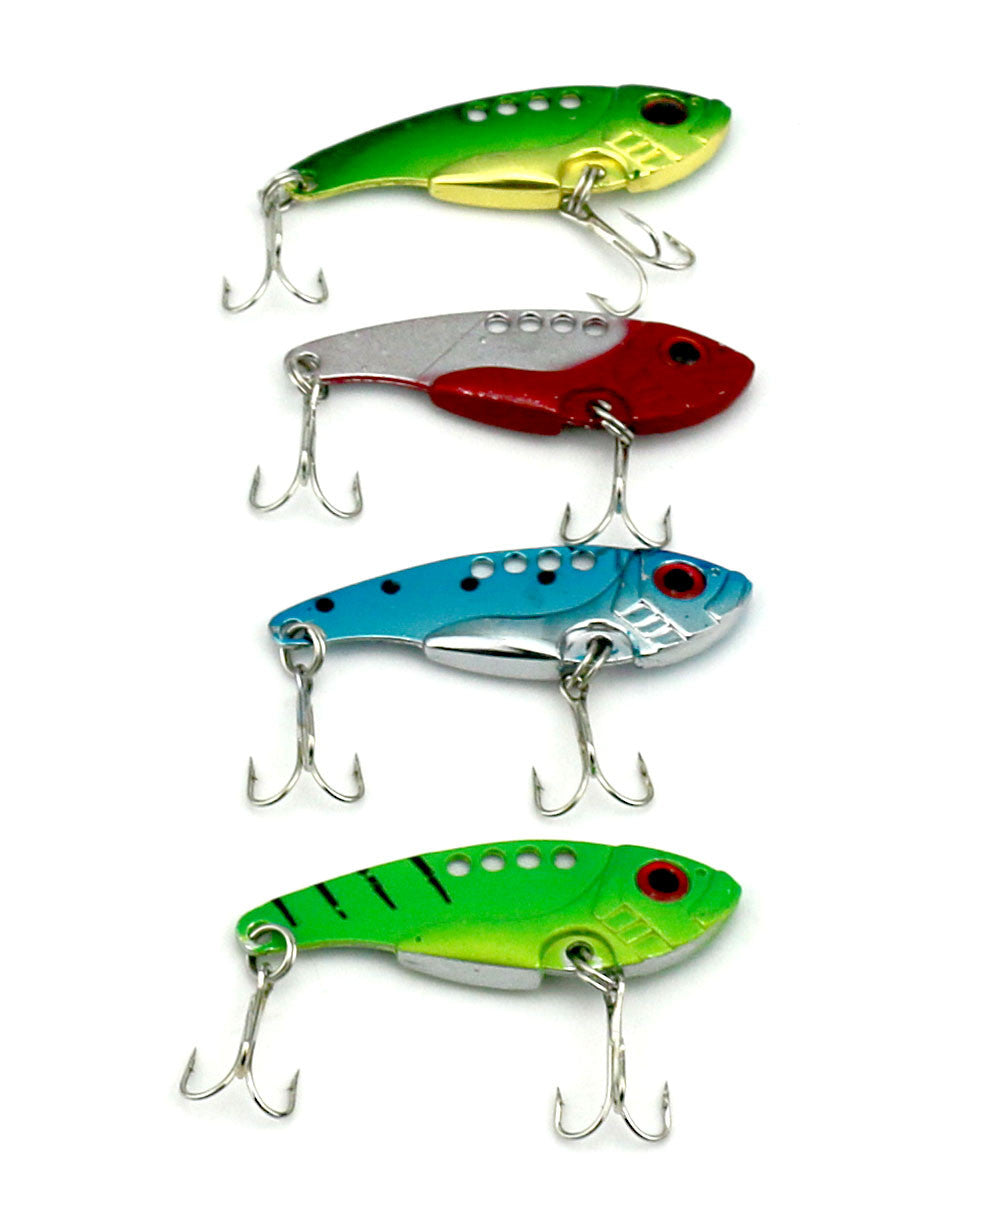 HENGJIA 20pcs Metal Vibration Hard VIB Fishing Lures 5.5CM 11G Isca Artificial Fishing Tackle Blade Sinking Lures